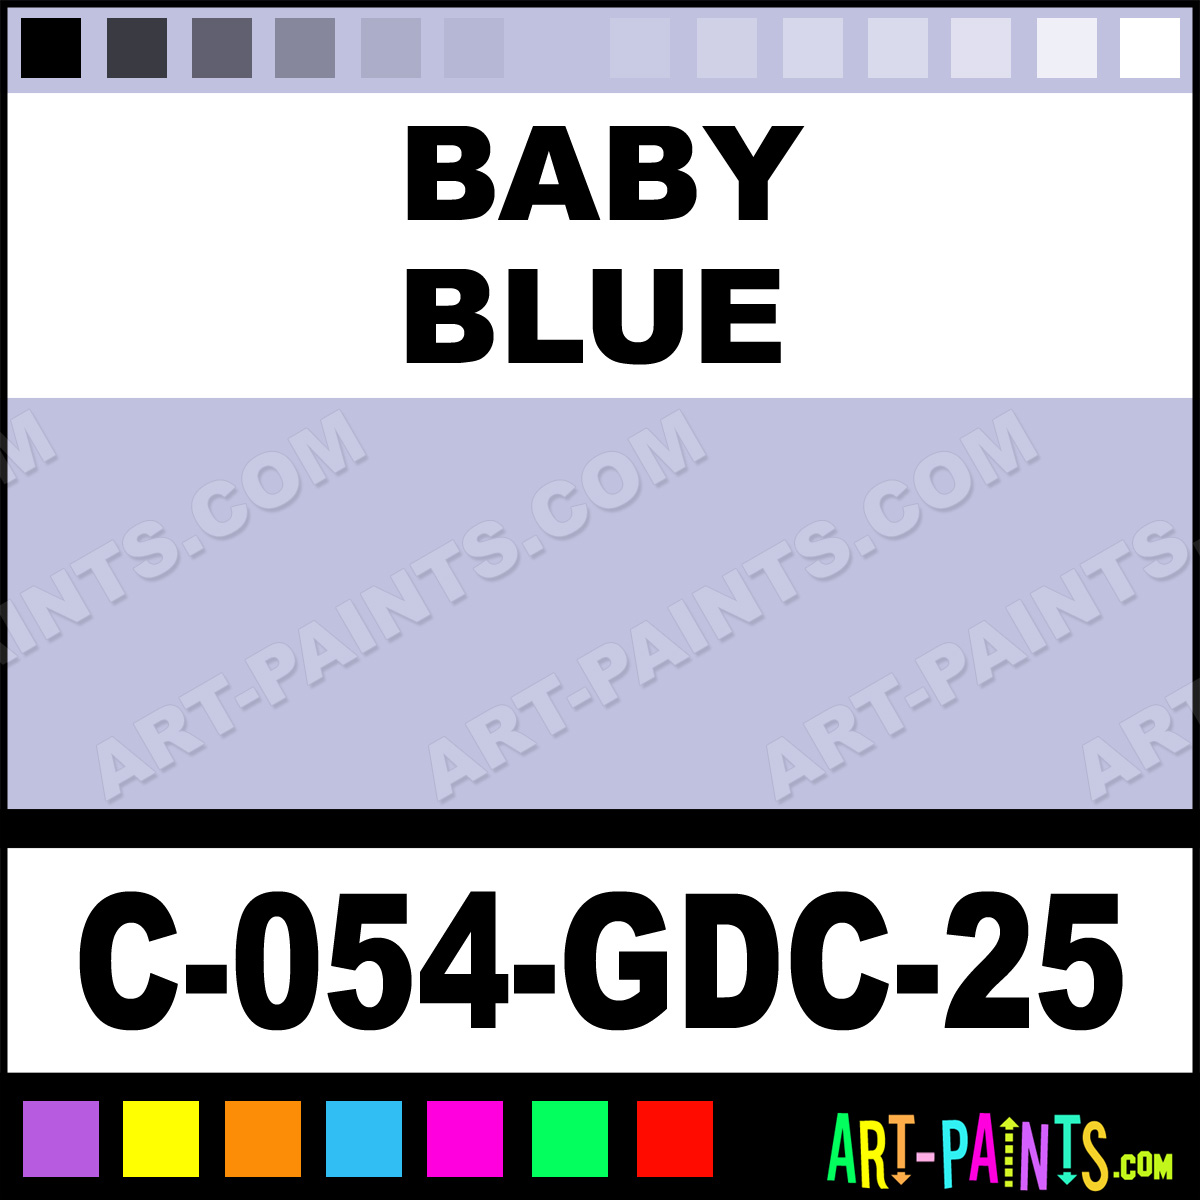 baby blue majolica gloss ceramic paints c 054 gdc 25